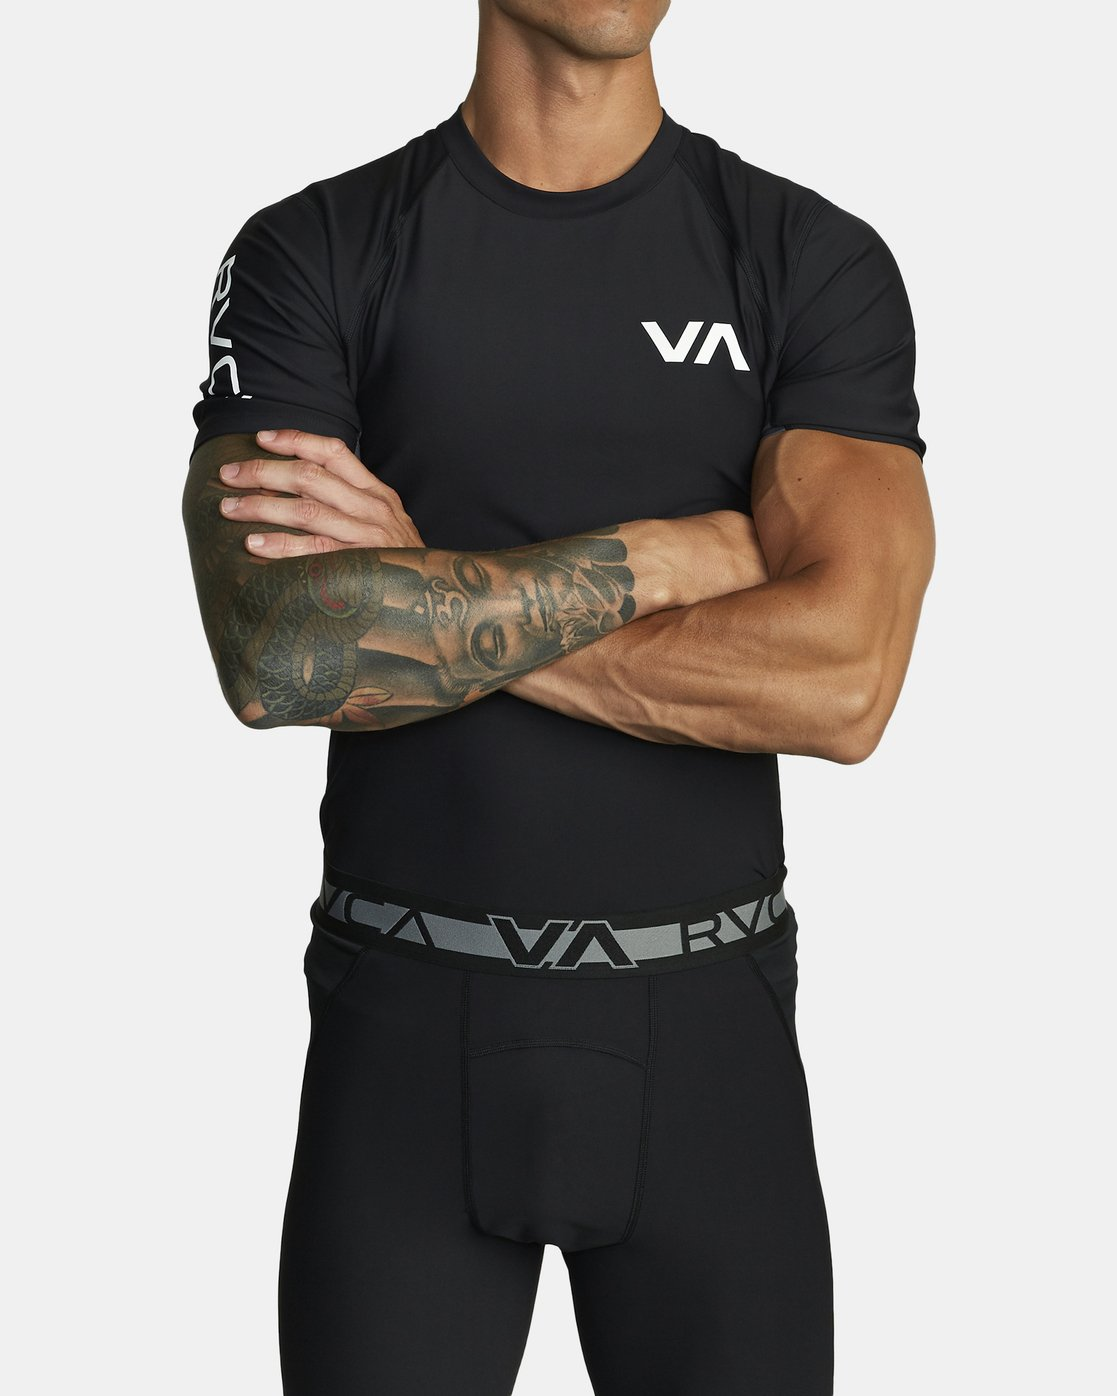 2 COMPRESSION SHORT SLEEVE TOP Black VR021RCS RVCA